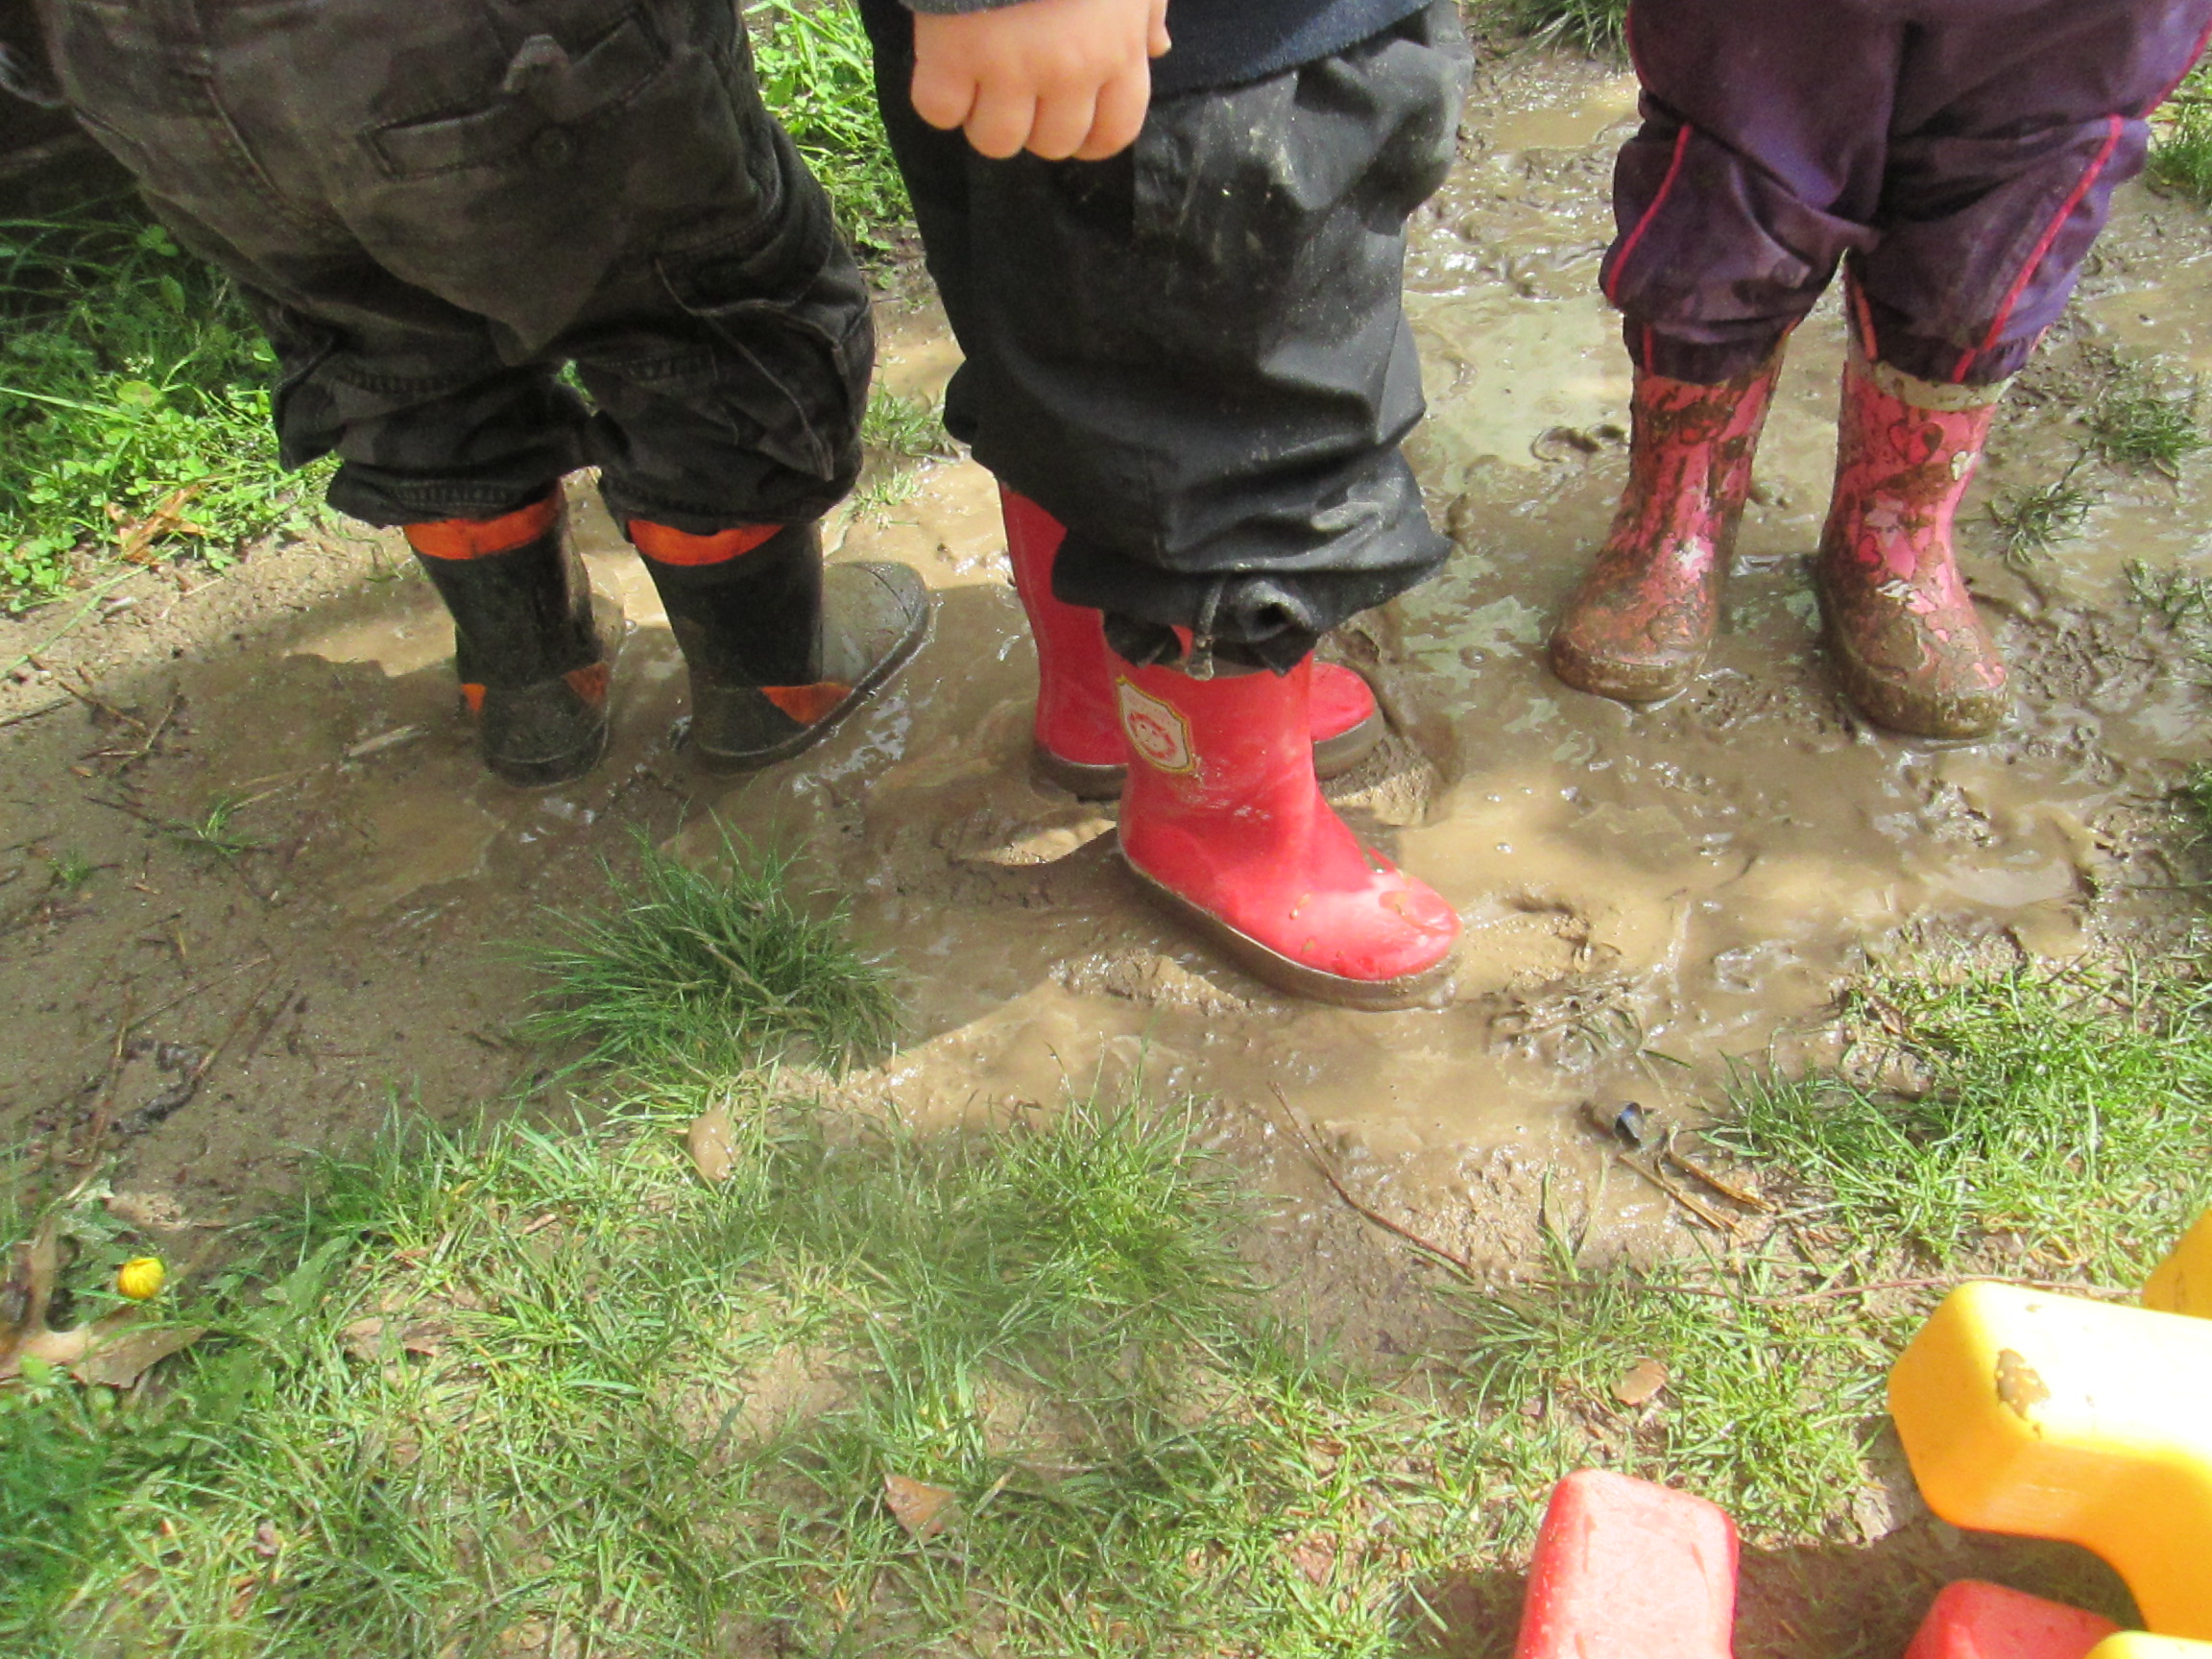 kids boots in the mud